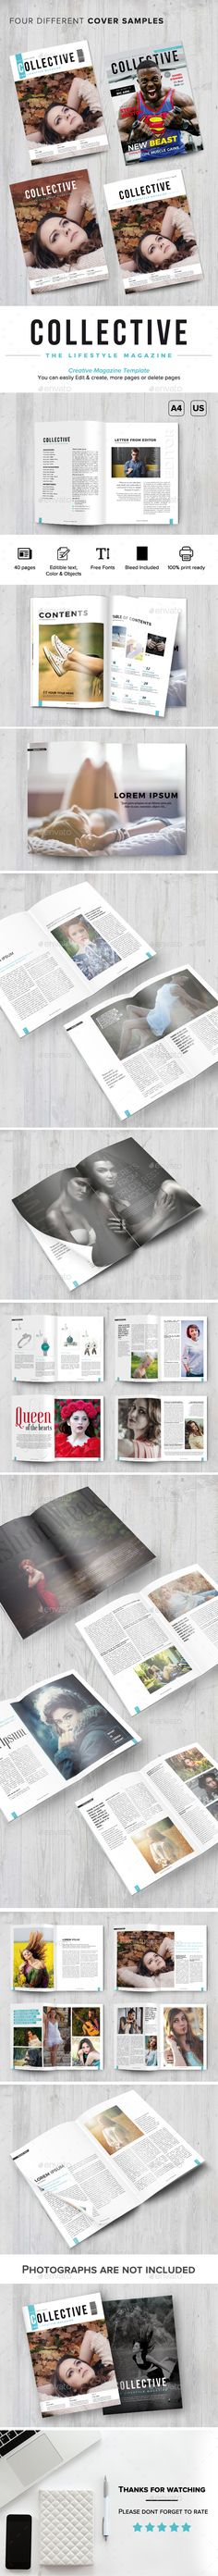 Collective Magazine Collective Magazine / Clean & Professional Magazine Template. This template is suitable for any project purpose. Very easy to use and customize.  ................................................  Features :  - 4 Basic cover in two different sizes  - size: A4 & US Letter Sizes  - 40 pages Indesign Document  - Bleed .5cm  - Editable & Adobe Indesign  - .Indd .Idml .Pdf files Included  - Master Pages  - Used free fonts  - Professional design